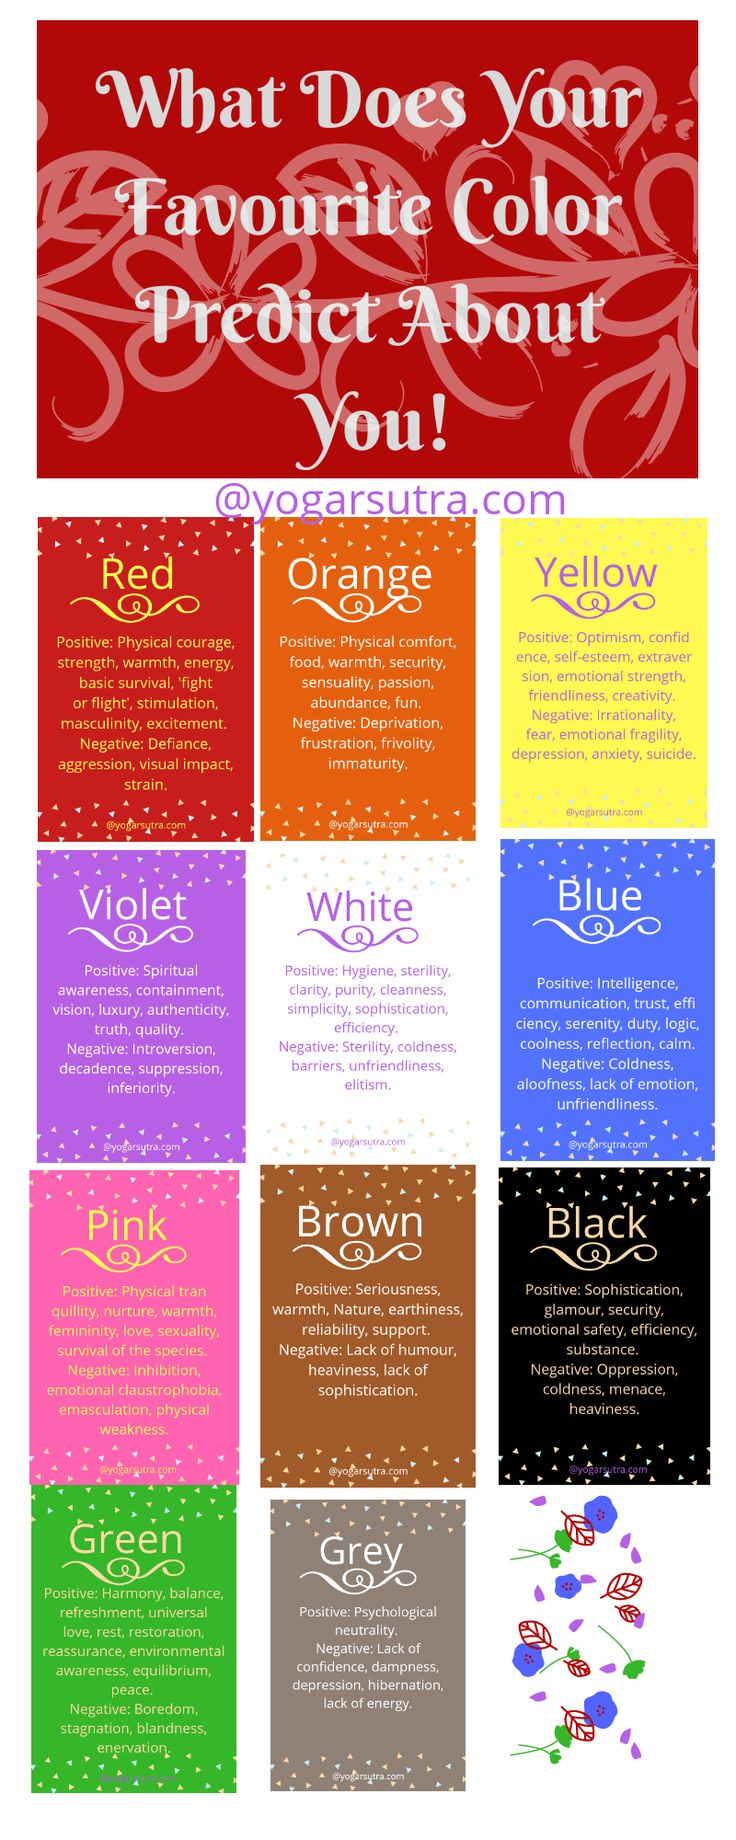 1571307631_437_Psychology-Infographic-What-Does-Your-Favorite-Color-Predicts-About Psychology Infographic : What Does Your Favorite Color Predicts About You